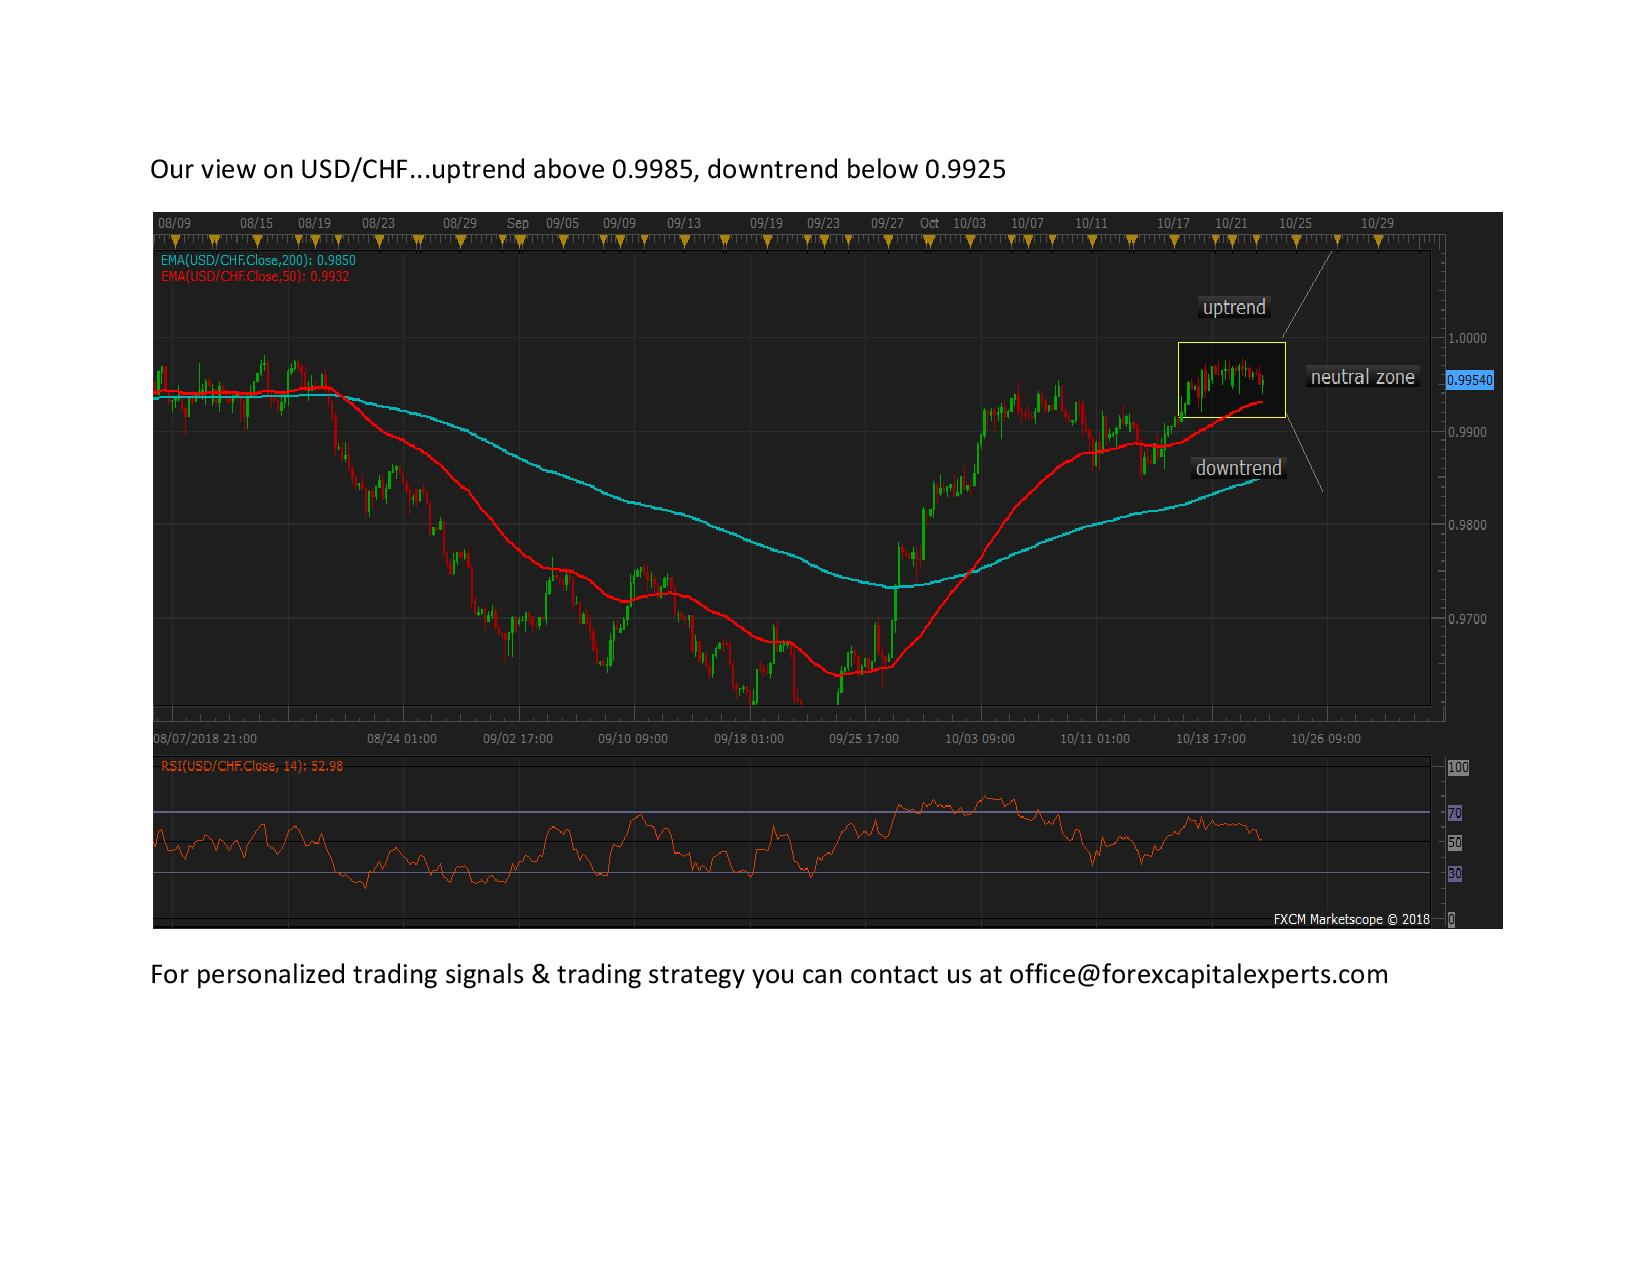 Our view on USDCHF page 00